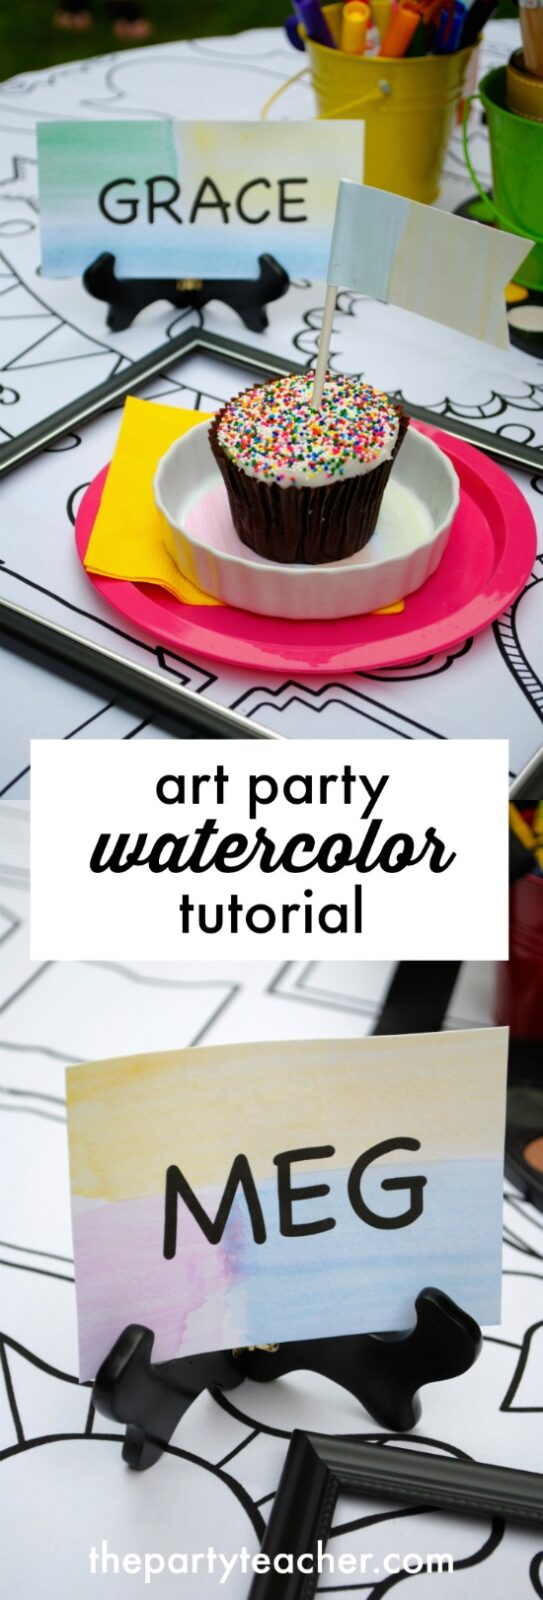 Art party watercolor tutorial by The Party Teacher